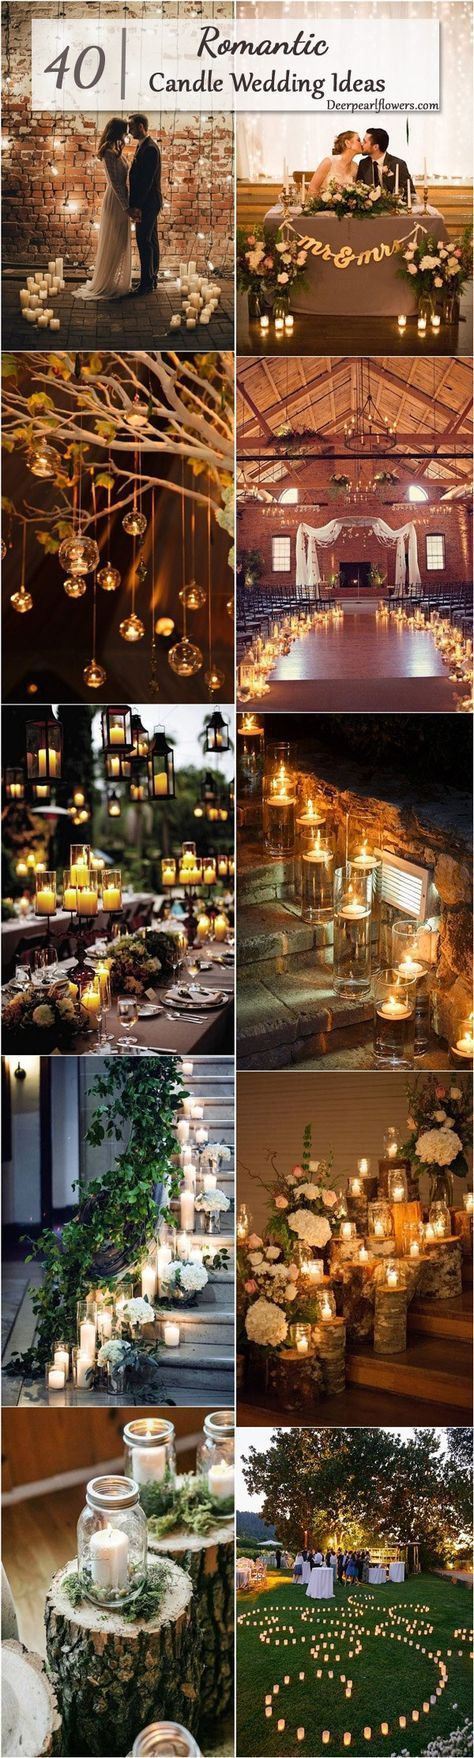 Rustic Country Wedding Ideas with Candles / http://www.deerpearlflowers.com/wedding-ideas-using-candles/4/